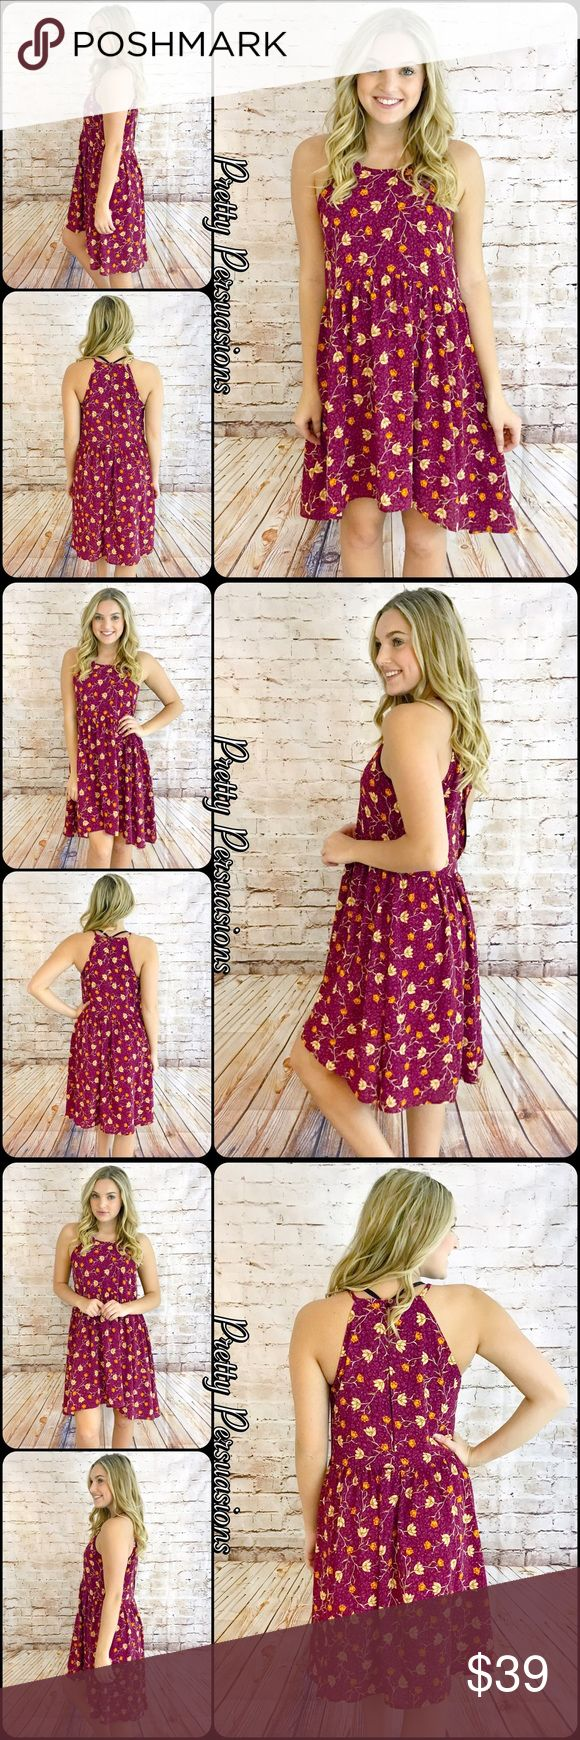 nwt floral print baby doll dress nwt floral print baby doll dress available in s